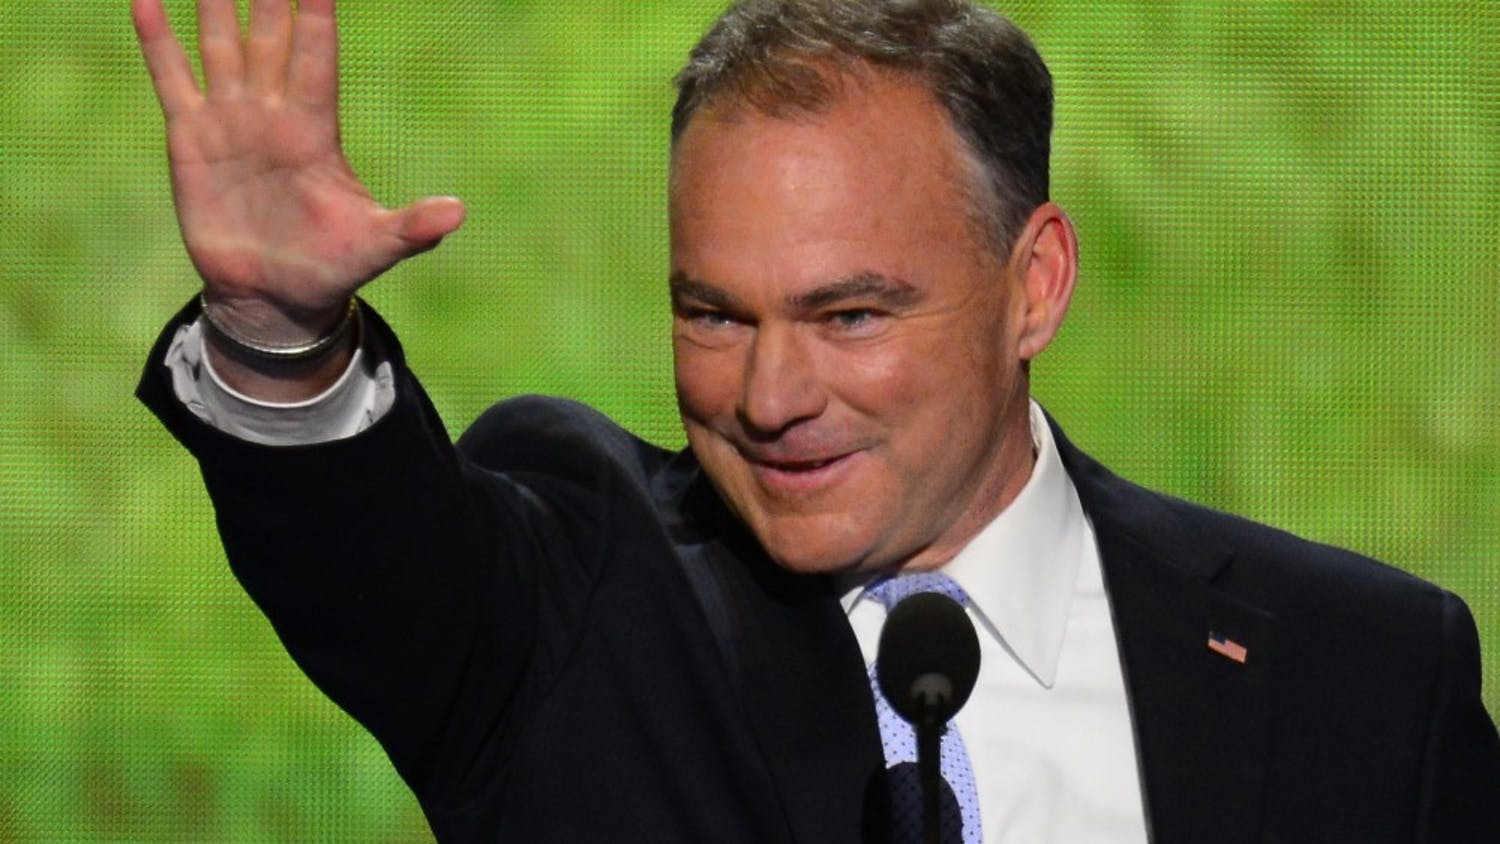 Former Virginia Governor Tim Kaine speaks at 2012 Democratic National Convention at the Time Warner Cable Arena in Charlotte, North Carolina, Tuesday, September 4, 2012. (Harry E. Walker/MCT)